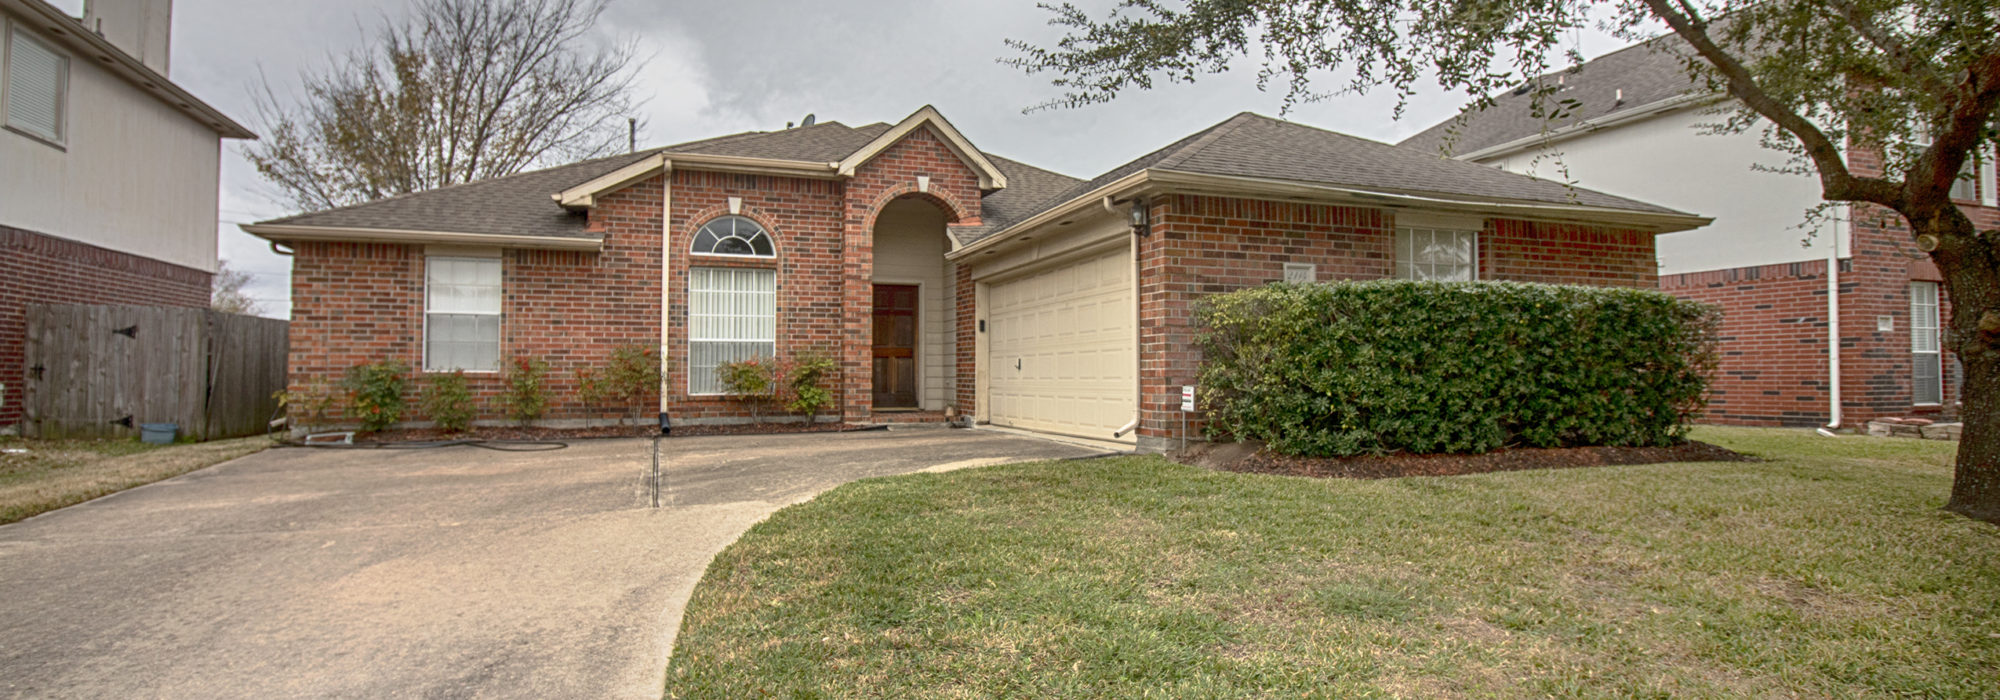 2114 MOUNTSHIRE LANE, MISSOURI CITY, TX 77489